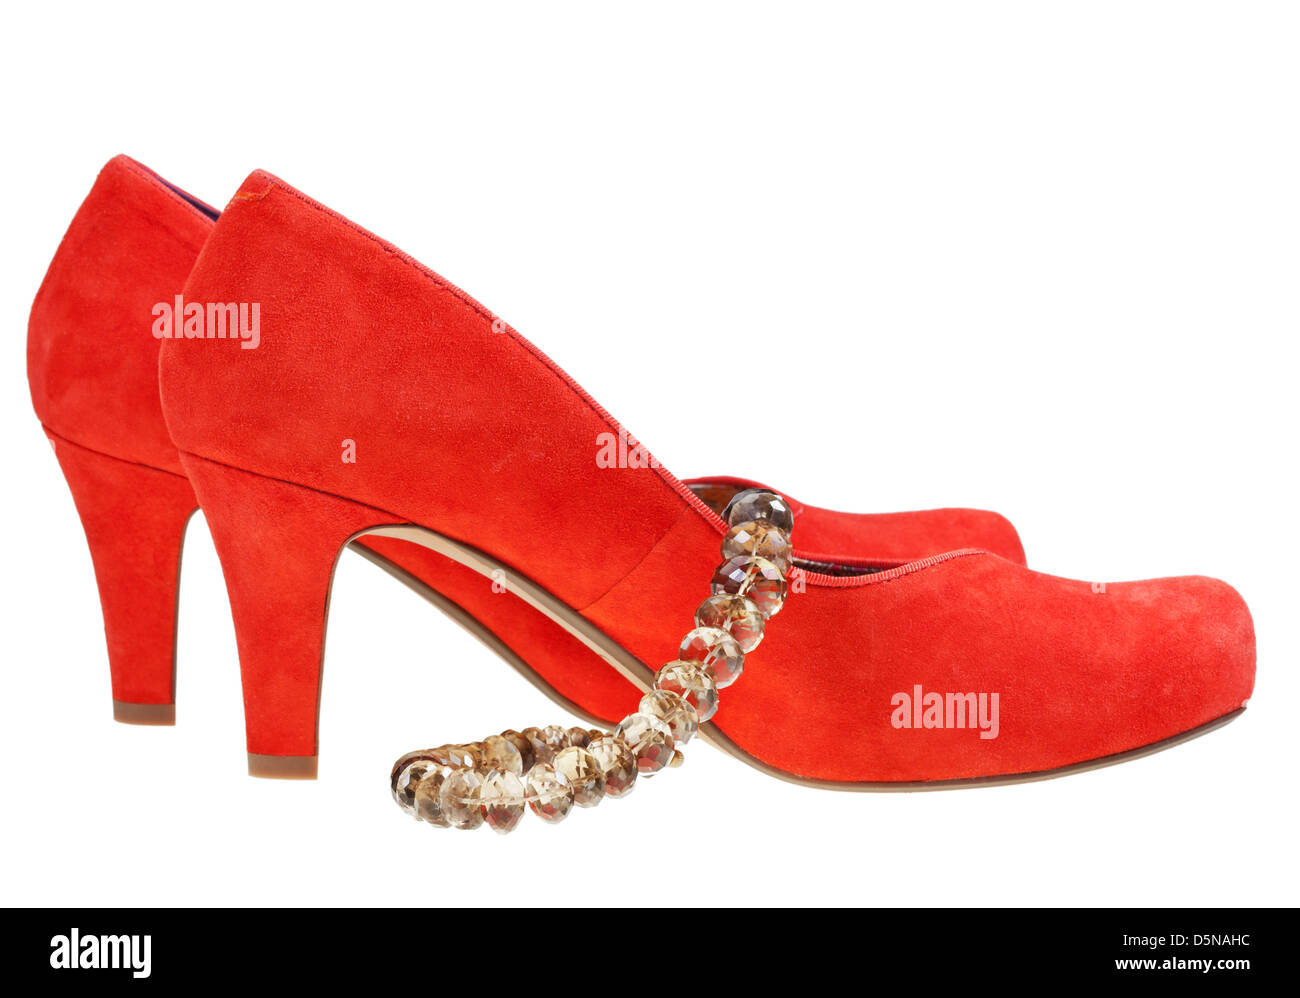 red high heel pump shoes with necklace isolated on white background - Stock Image